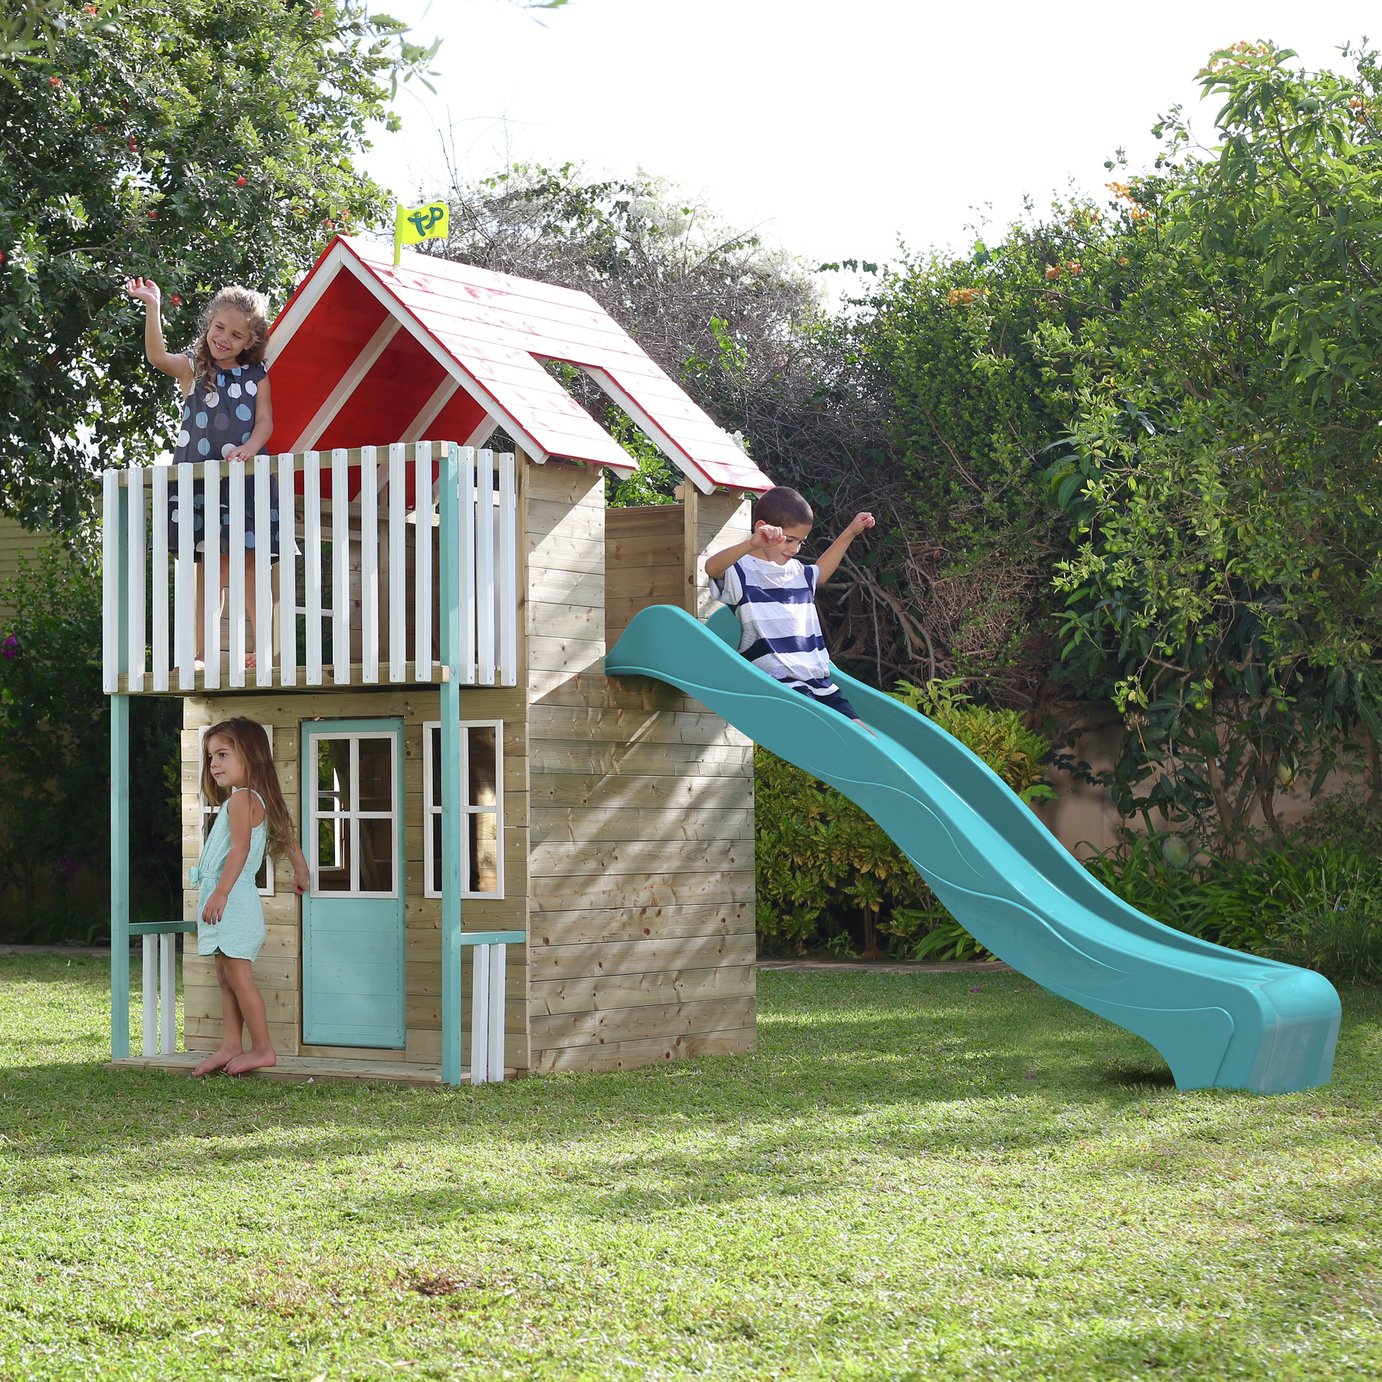 Tp toys TP PADSTOW WOODEN PLAYHOUSE AND SLIDE